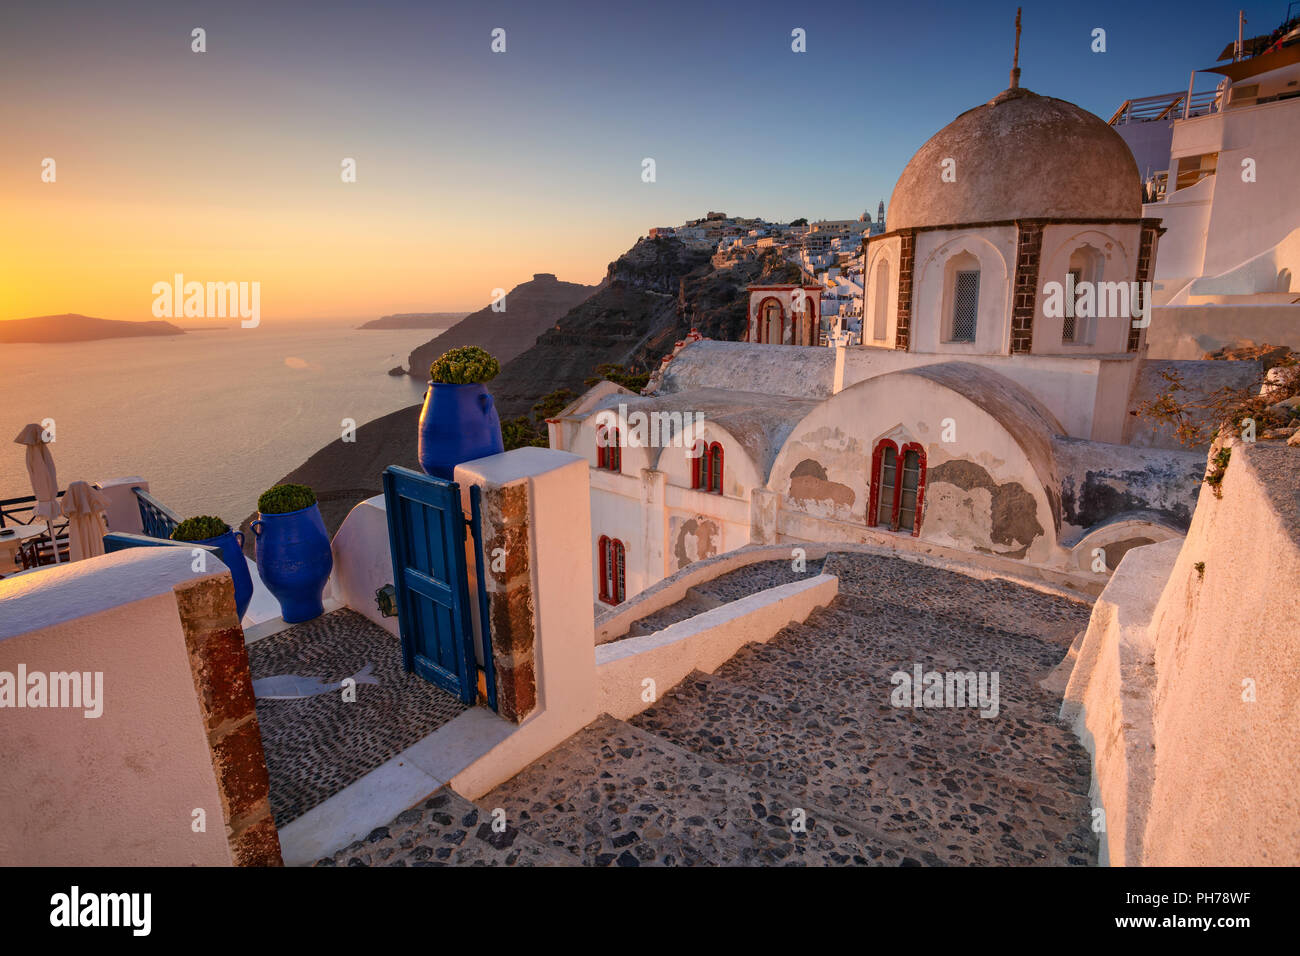 Thira, Santorini. Image of famous village Thira located at one of Cyclades island of Santorini, South Aegean, Greece. - Stock Image